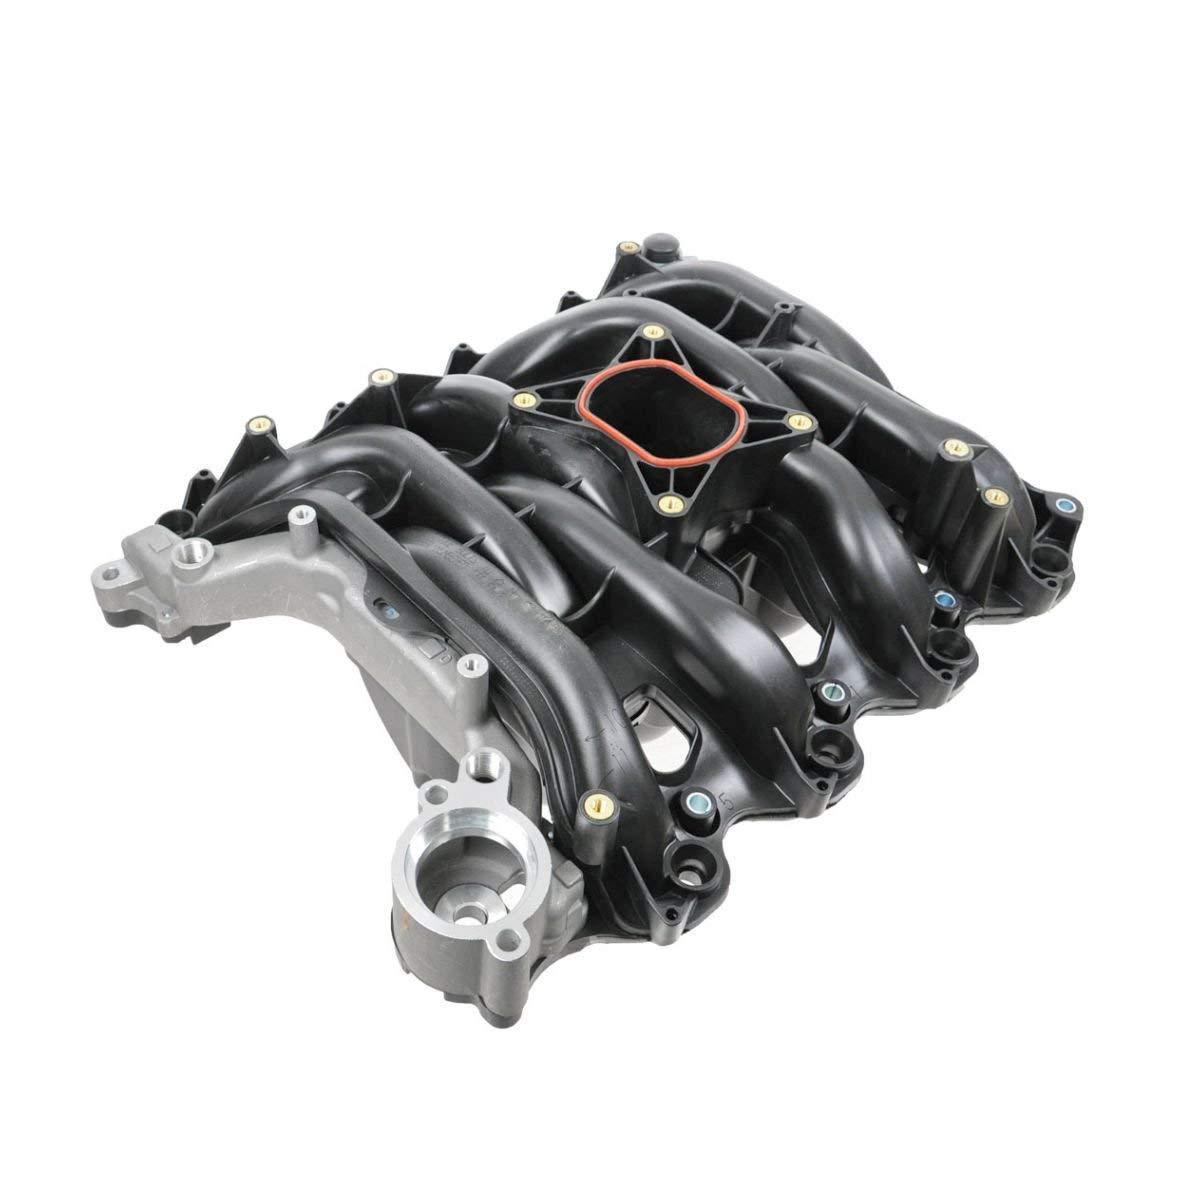 2001-2008 Intake Manifold For <em>Ford</em> Crown Victoria V8 4.6L (8th Vin Digit W)